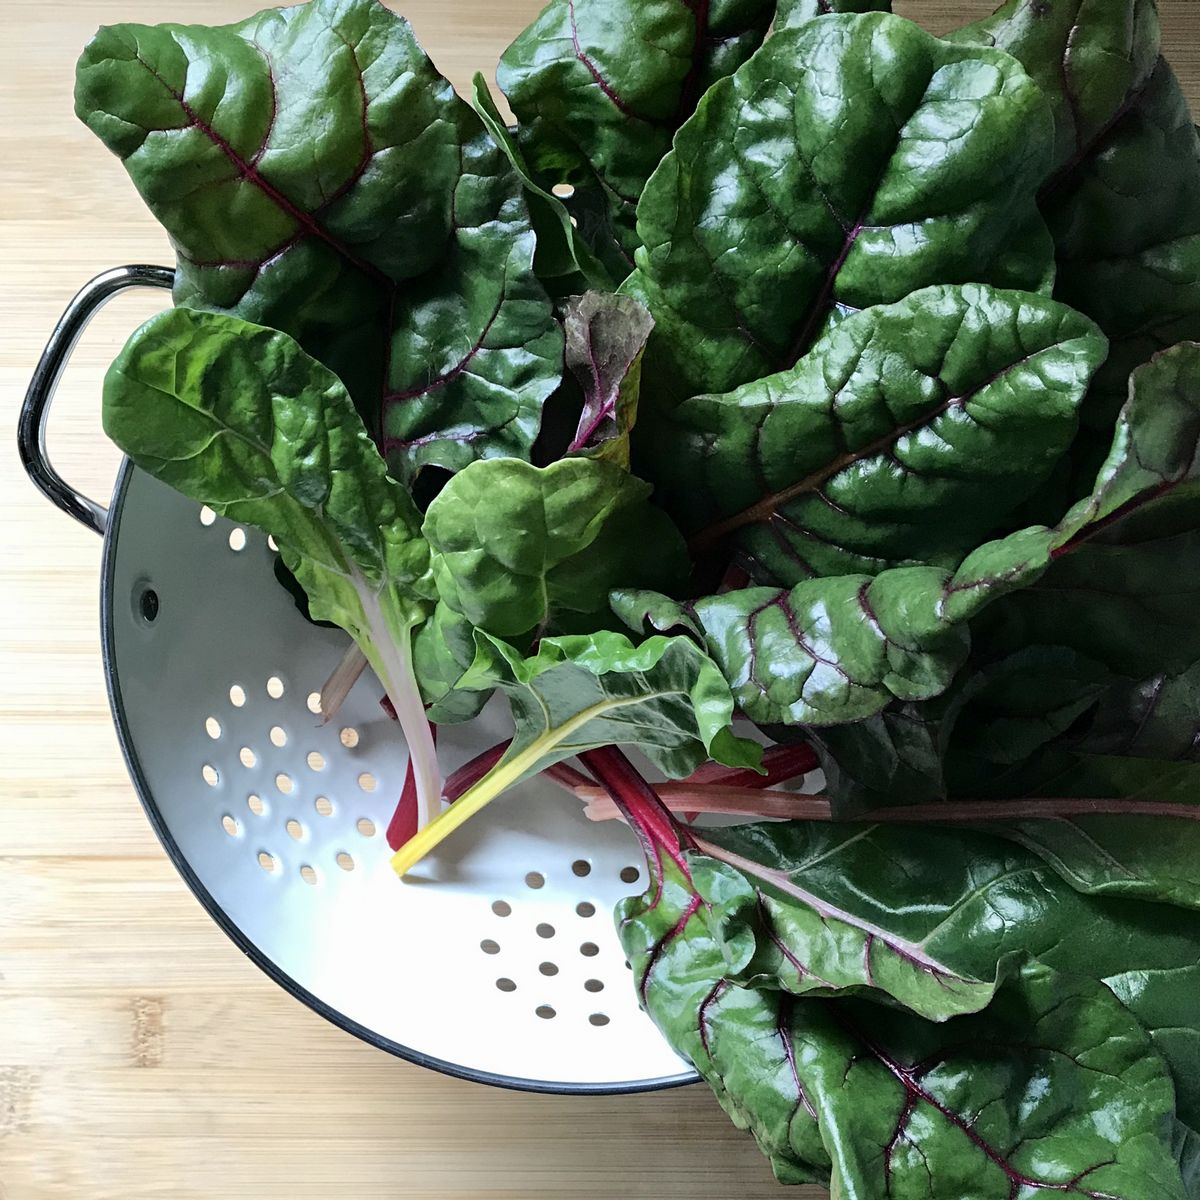 Chard in a white colander.